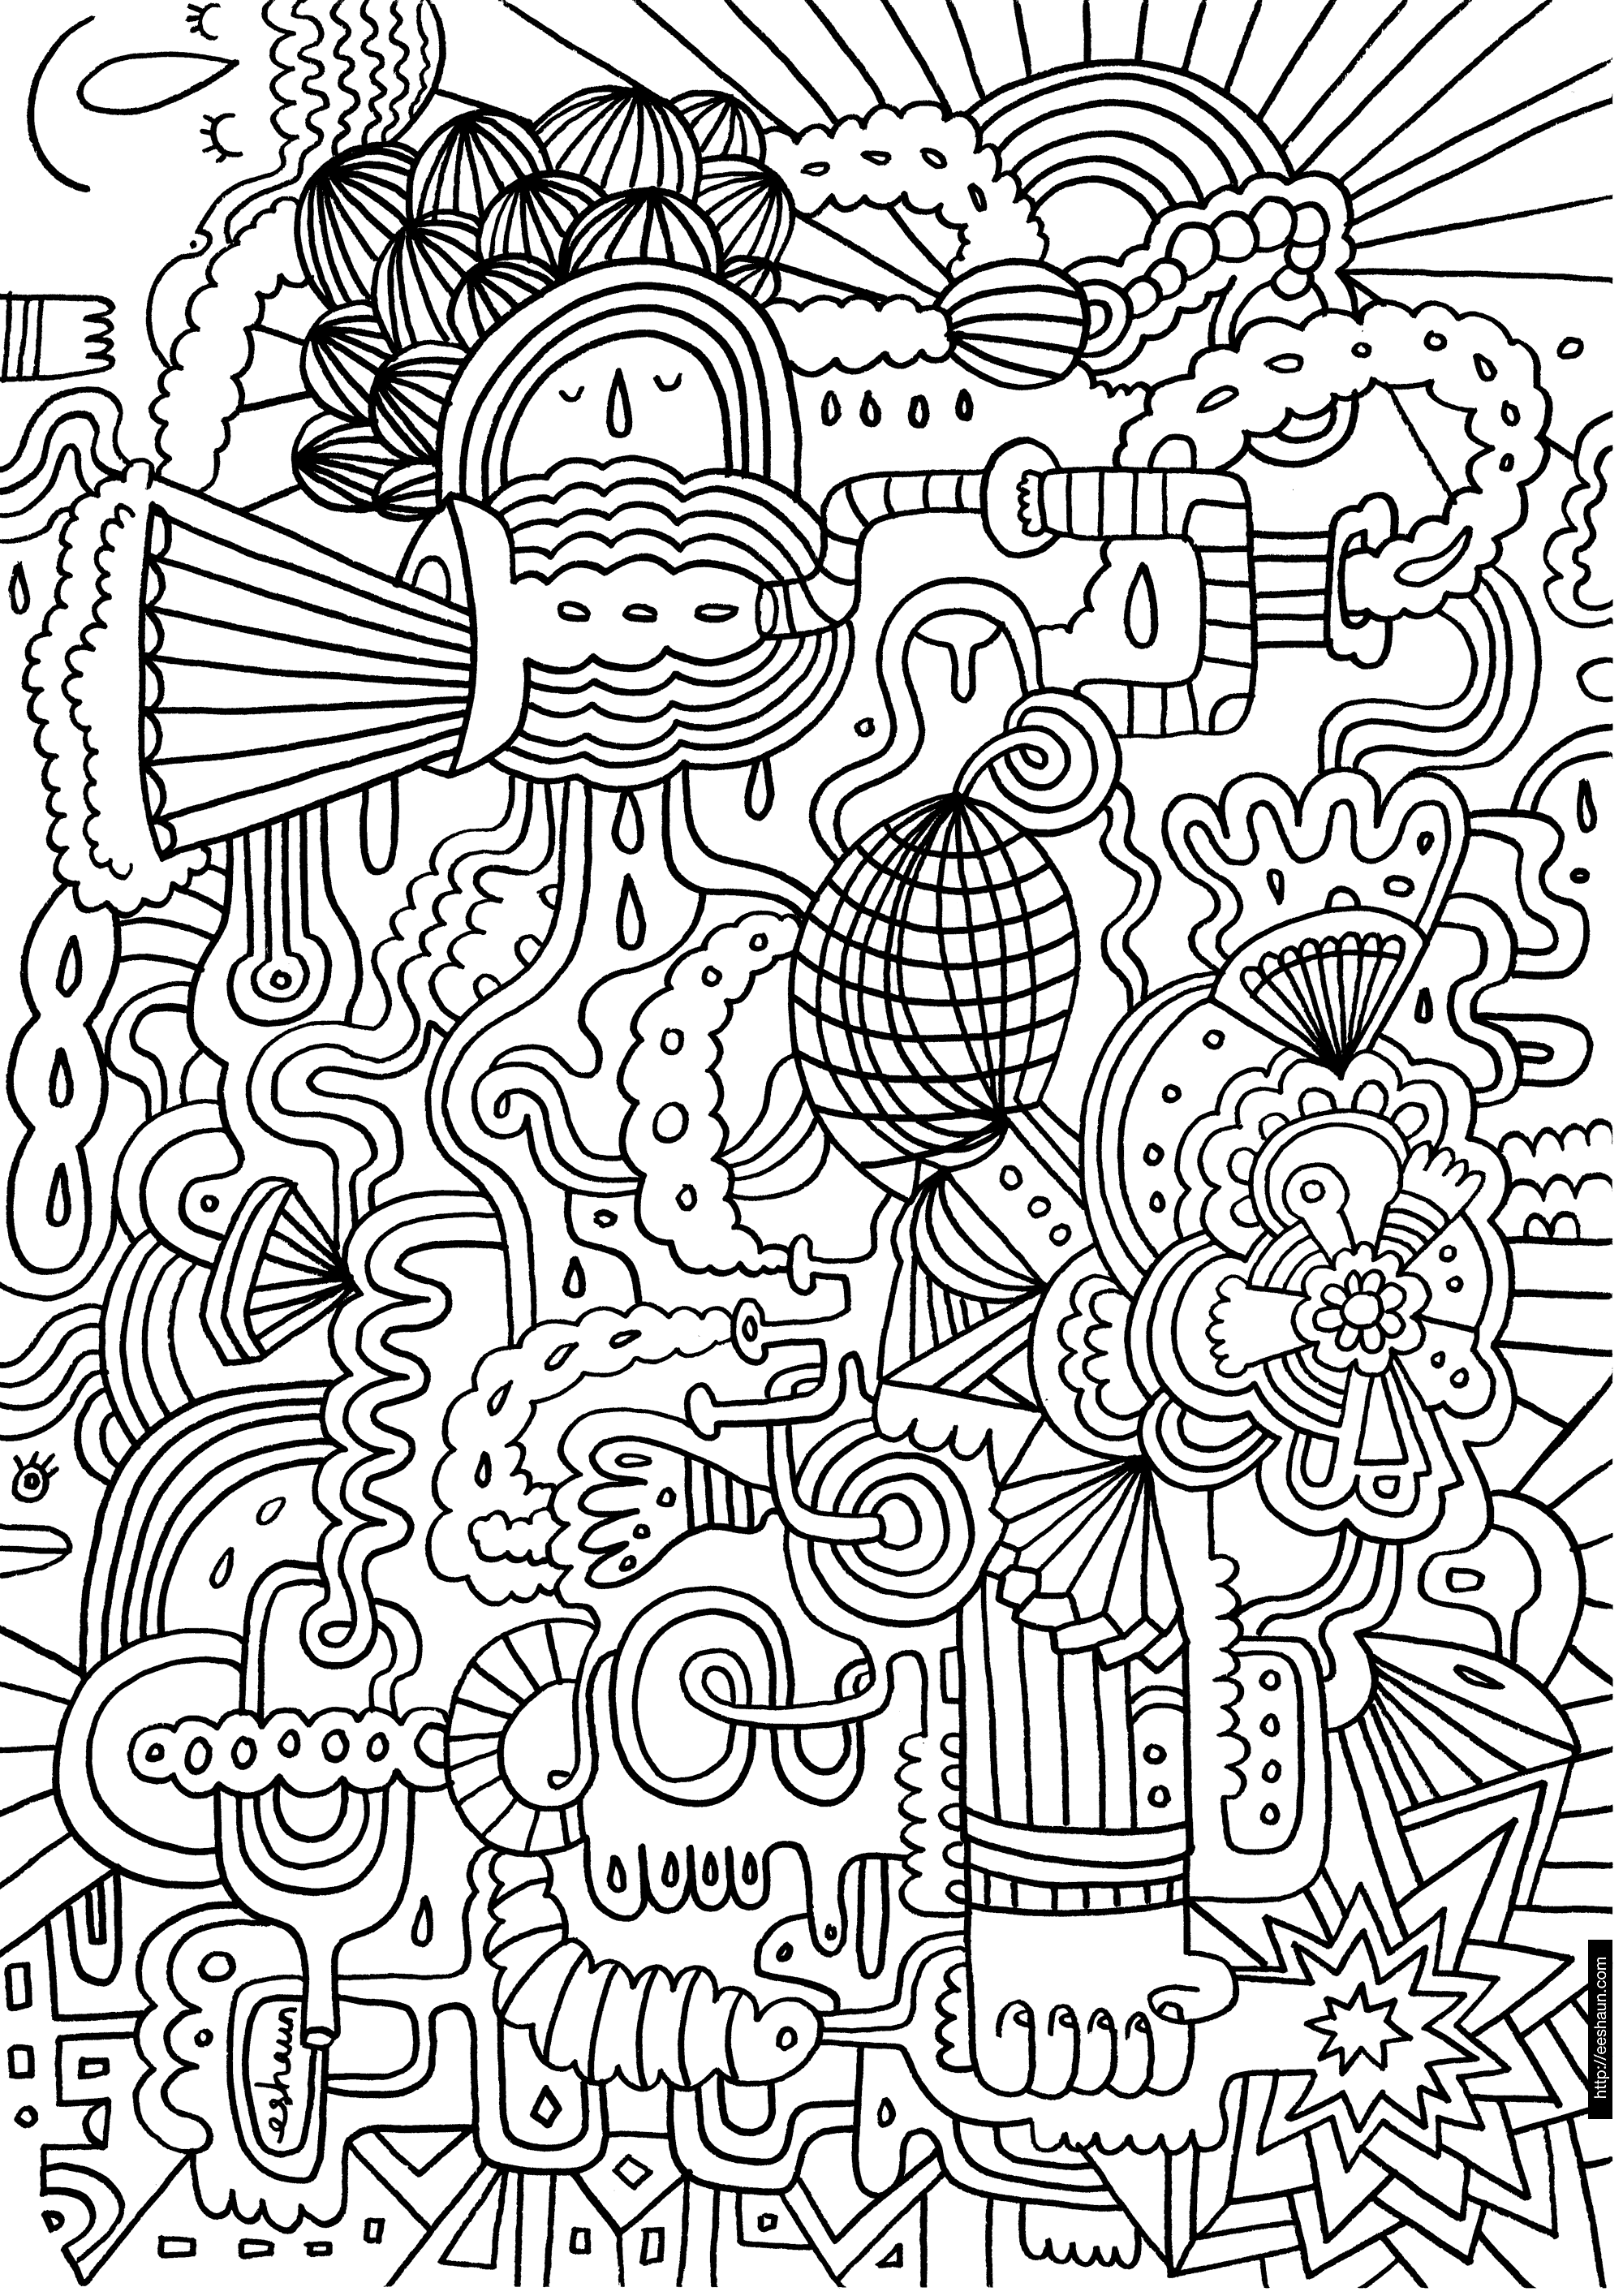 hard coloring pages free large images coloring pages pinterest patterns free and pipes